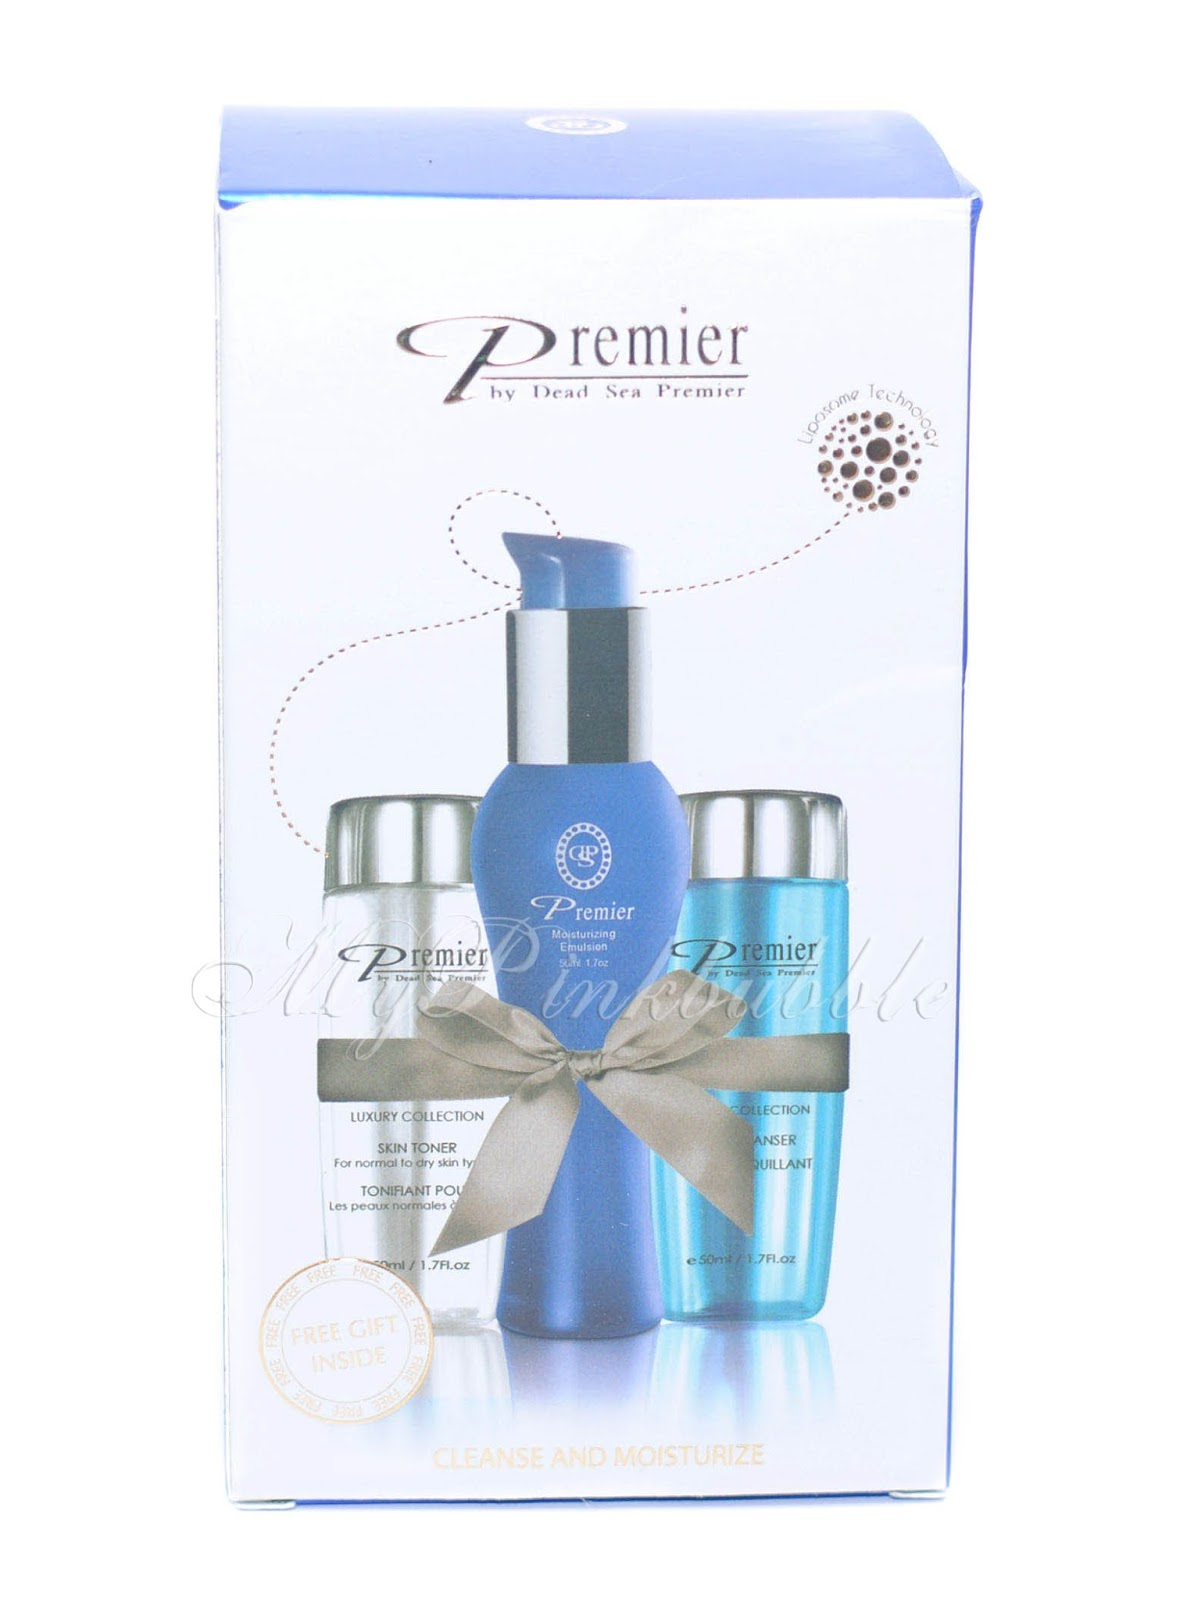 Premier cosmeticos pack serum